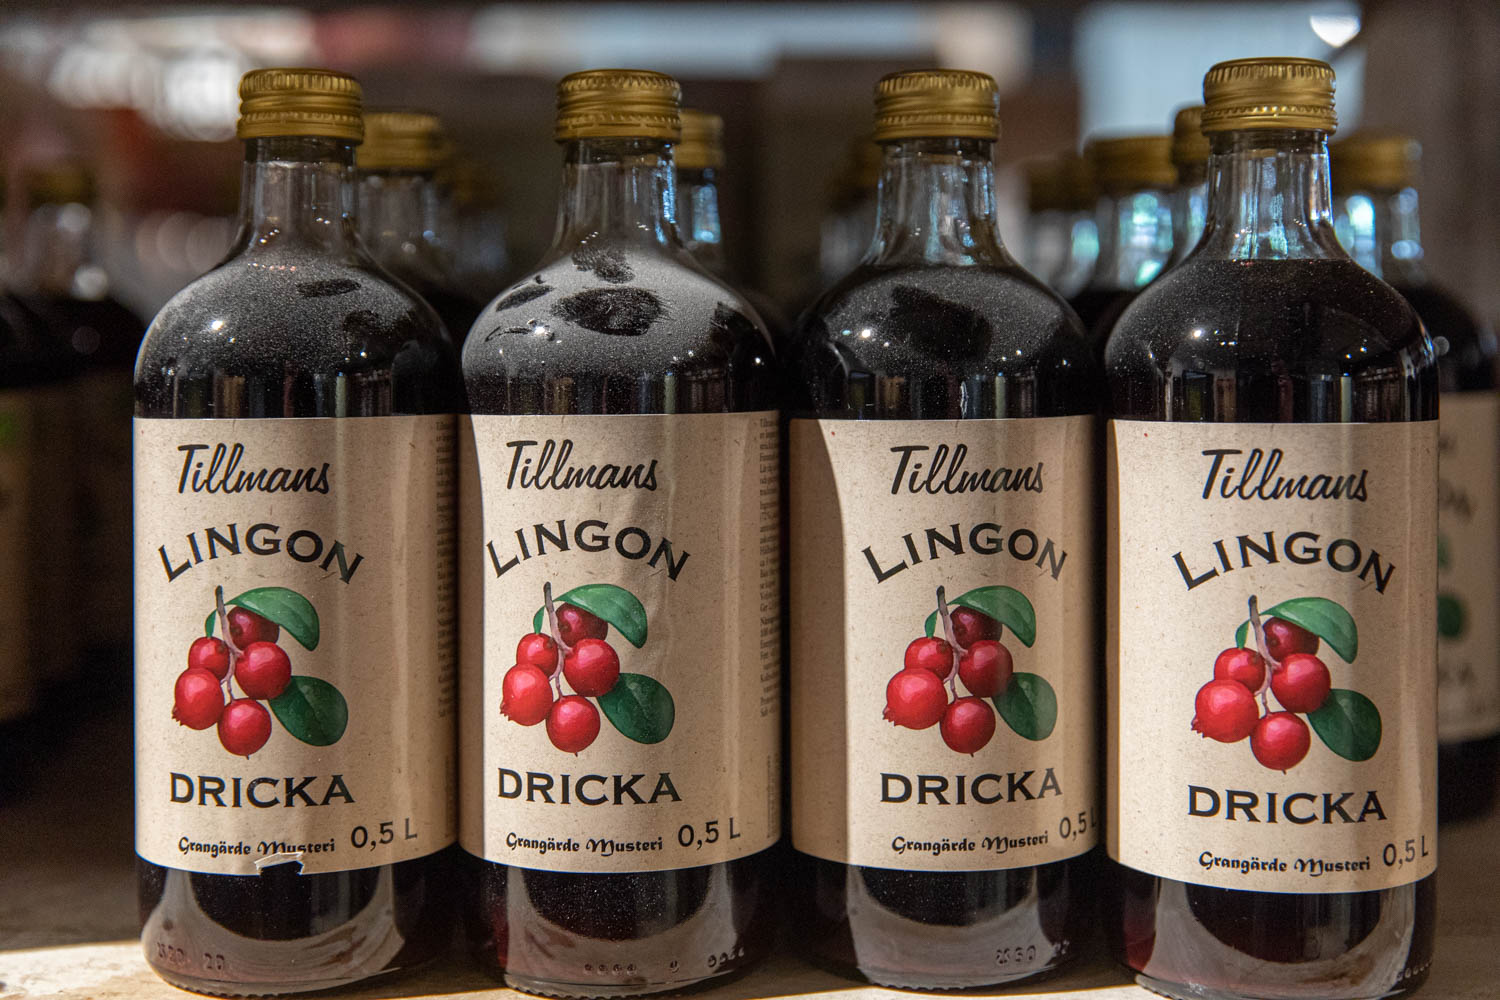 Lingondricka a Swedish mineralwater with a hint of lingon taste